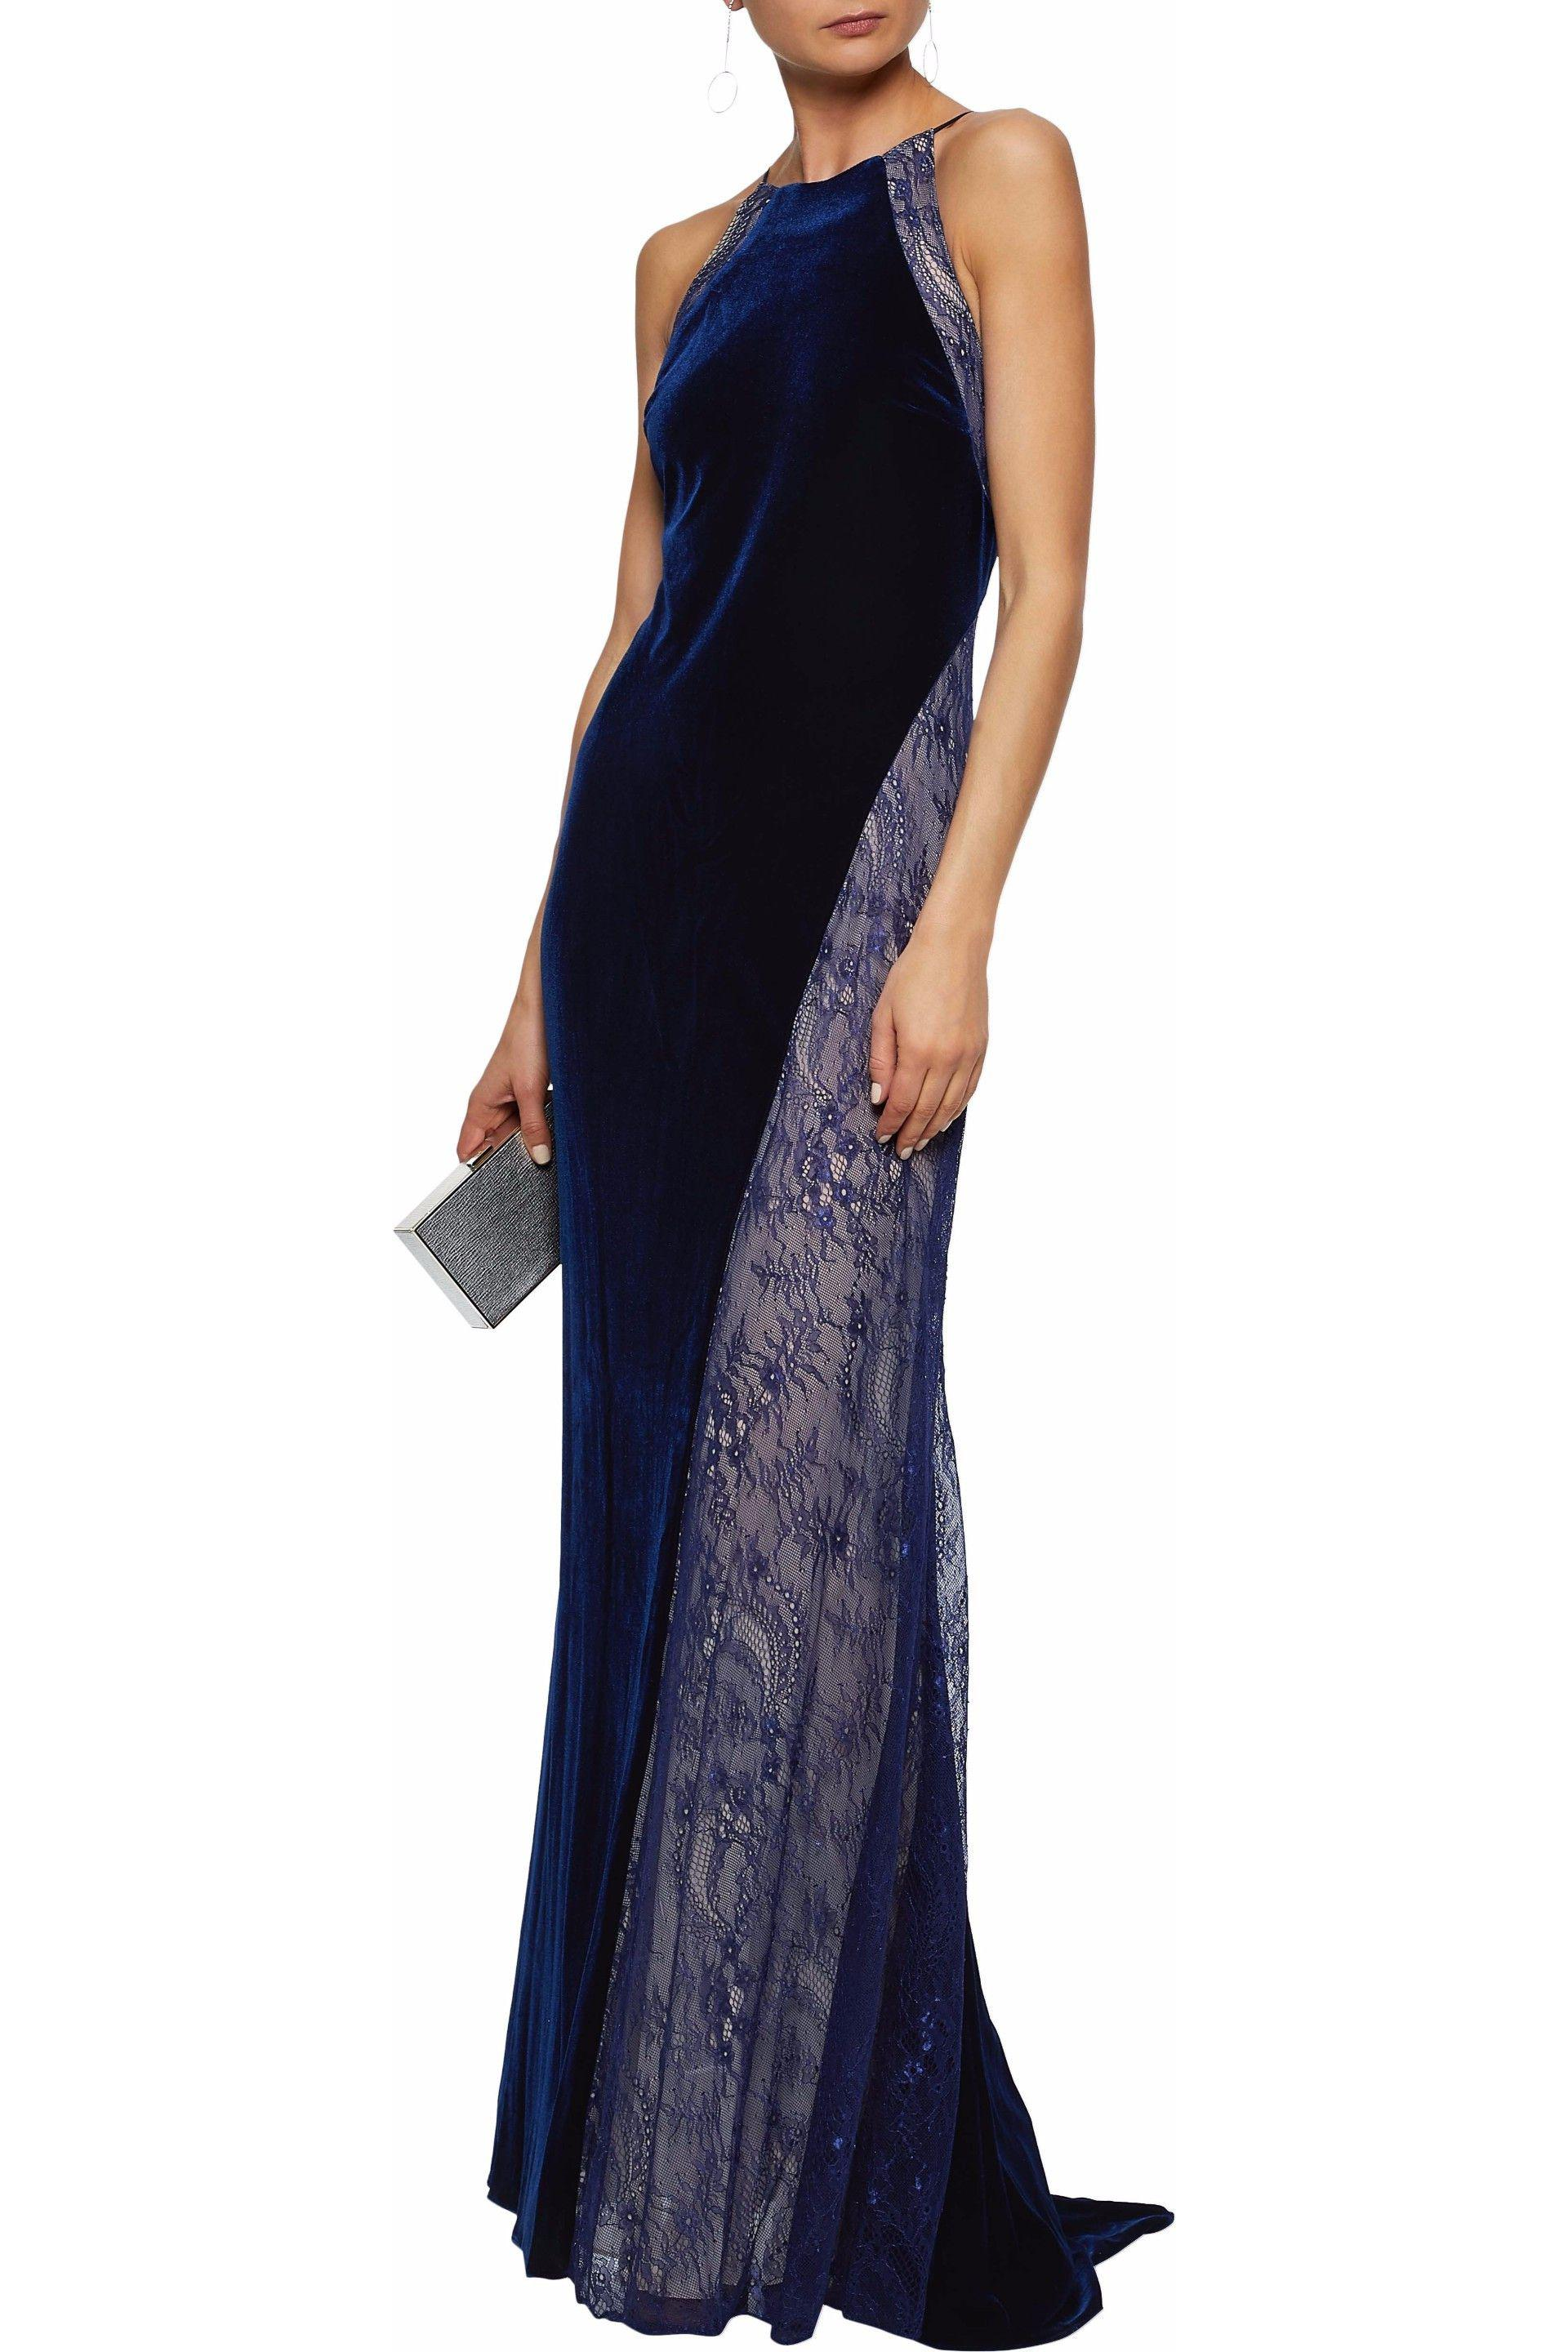 Badgley Mischka Lace-paneled Fluted Velvet Gown in Blue - Lyst